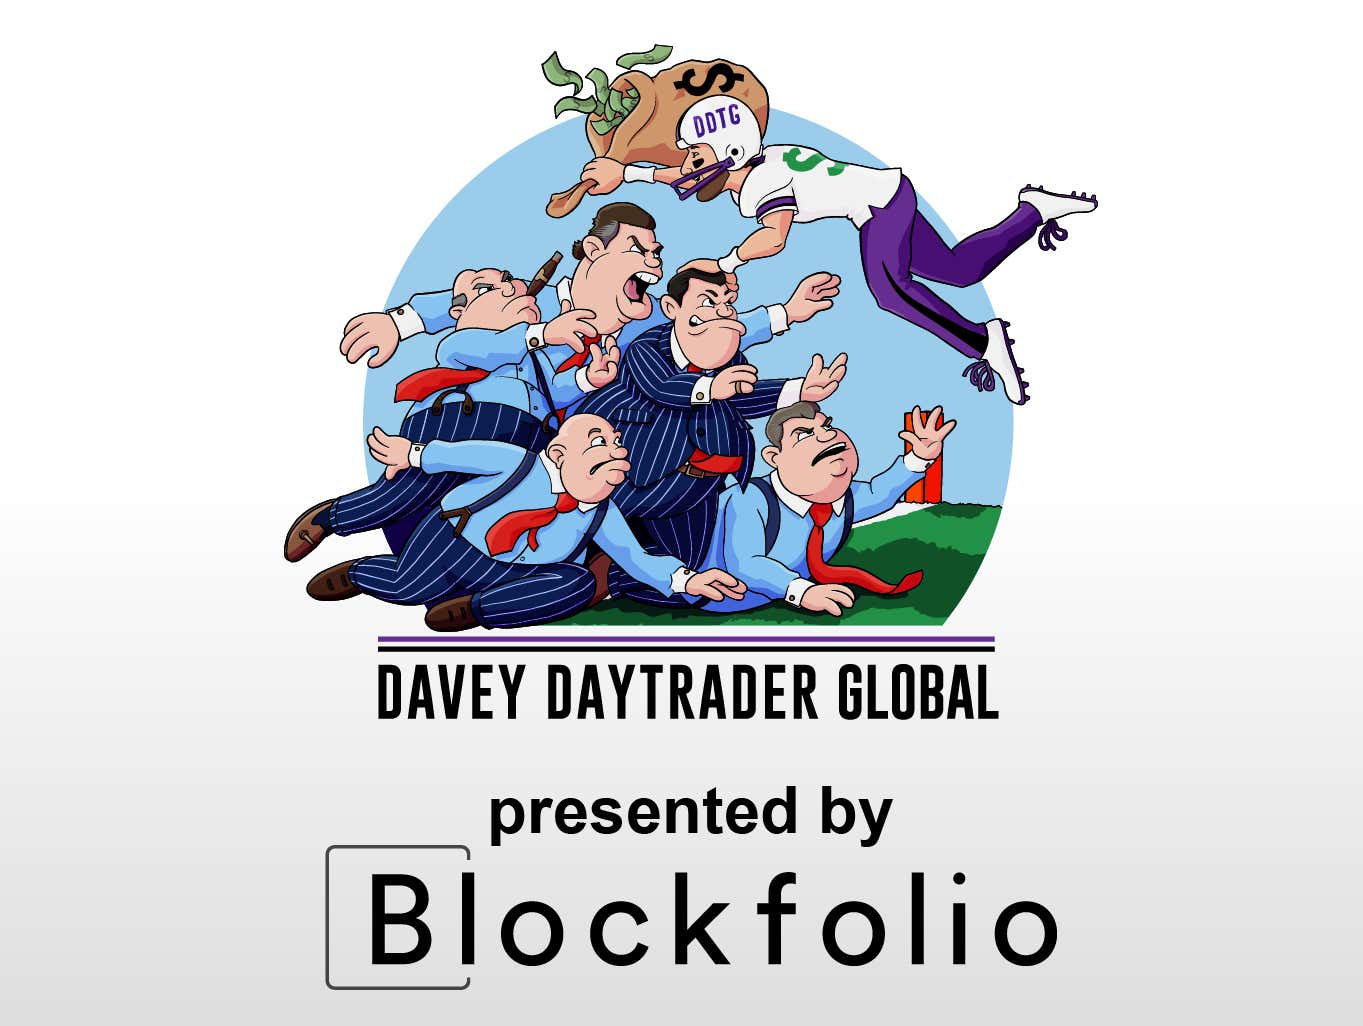 Davey Day Trader presented by Blockfolio - April 8, 2021